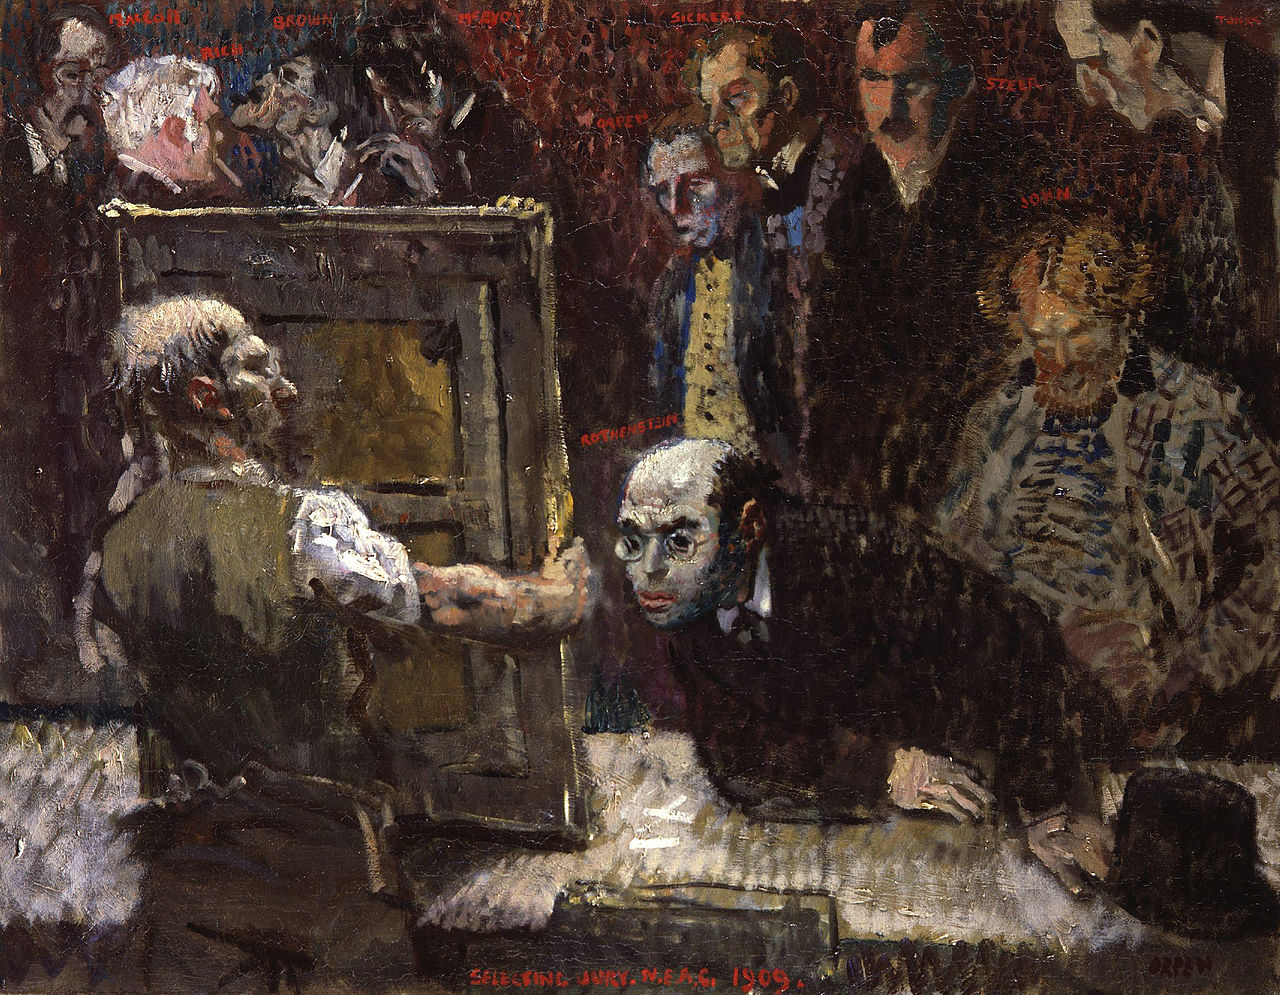 https://i2.wp.com/upload.wikimedia.org/wikipedia/commons/thumb/5/5c/The_Selecting_Jury_of_the_New_English_Art_Club,_1909_by_Sir_William_Orpen.jpg/1280px-The_Selecting_Jury_of_the_New_English_Art_Club,_1909_by_Sir_William_Orpen.jpg